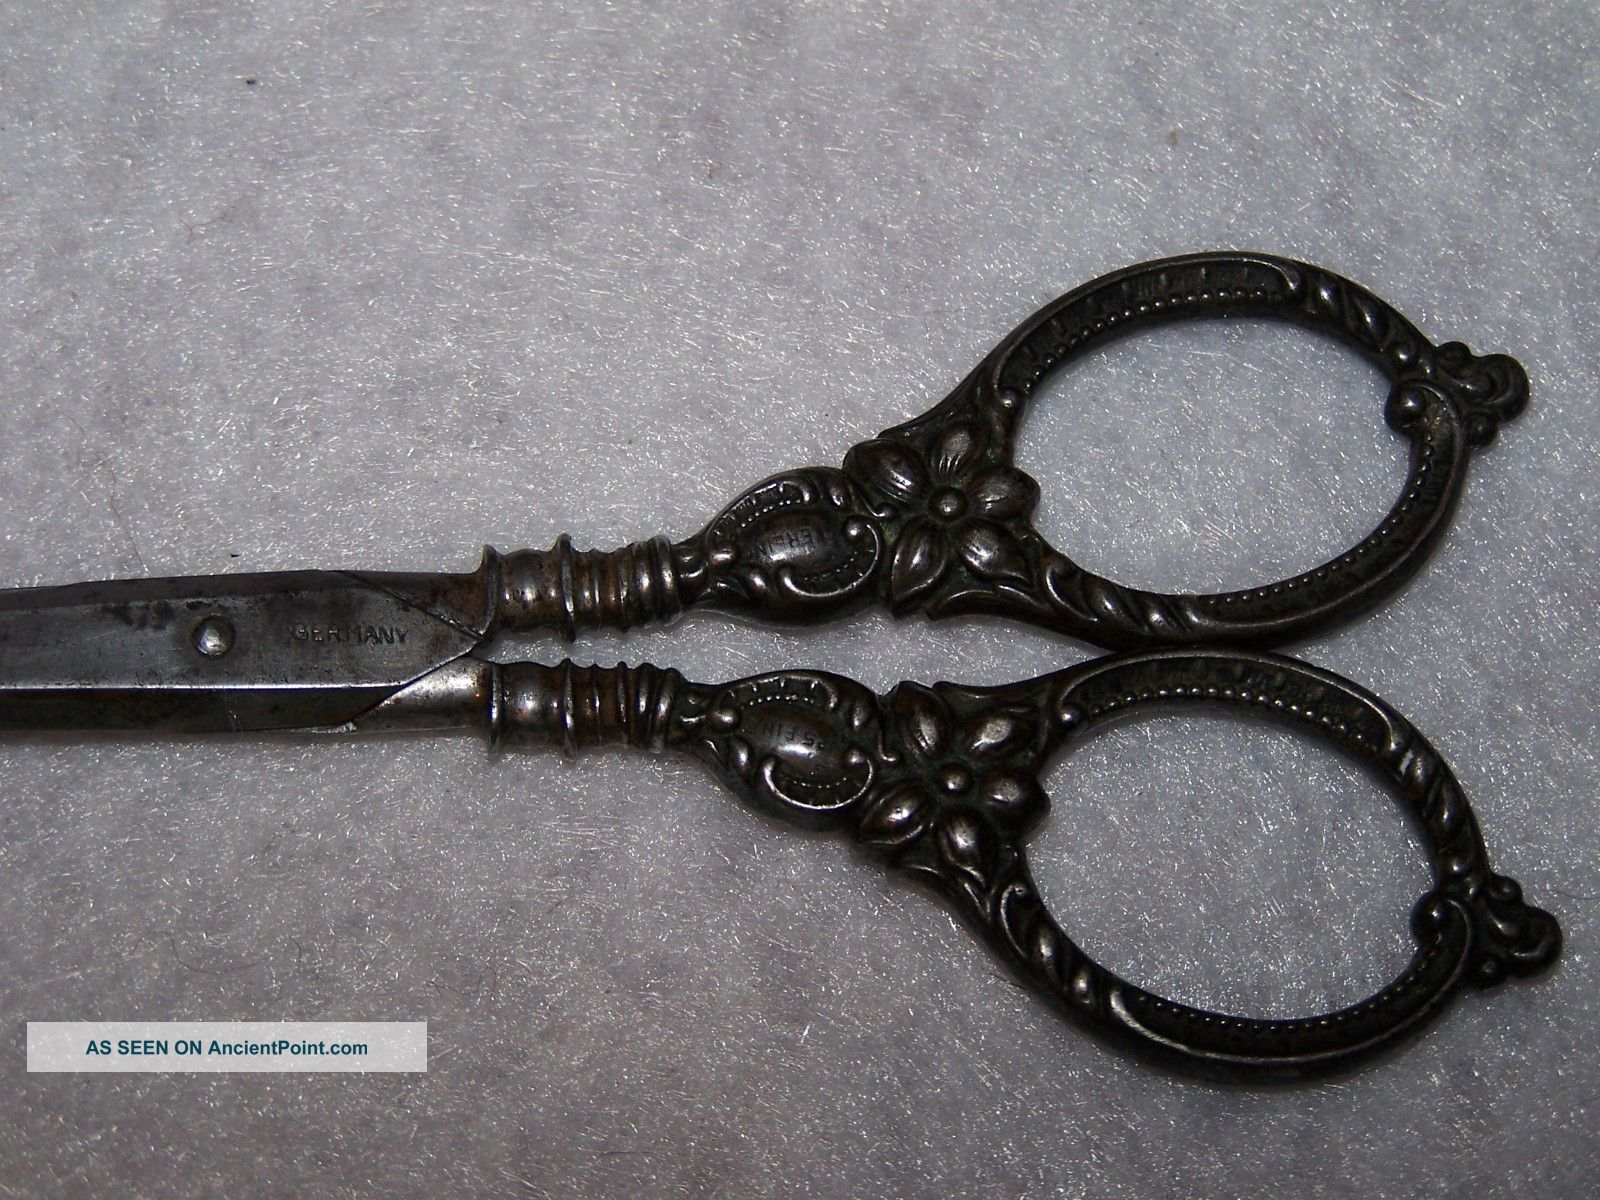 German.  925 Sterling Silver Scissor Embroidery Sewing,  R M & Co - Floral & Scroll Other photo